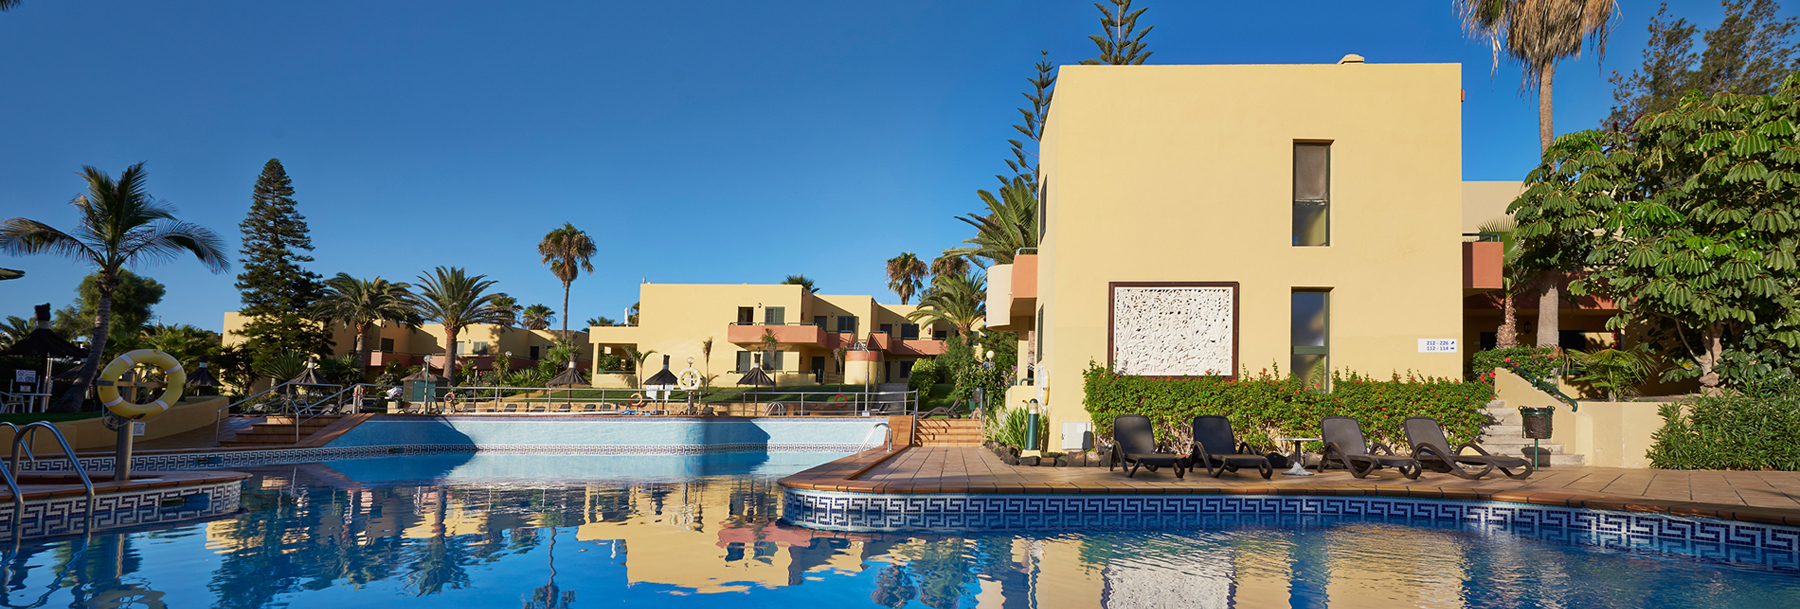 Beau Atlantic Garden Is Just A 10 Minute Walk From The Center Of Corralejo And A  30 Minute Drive From Fuerteventura Airport.